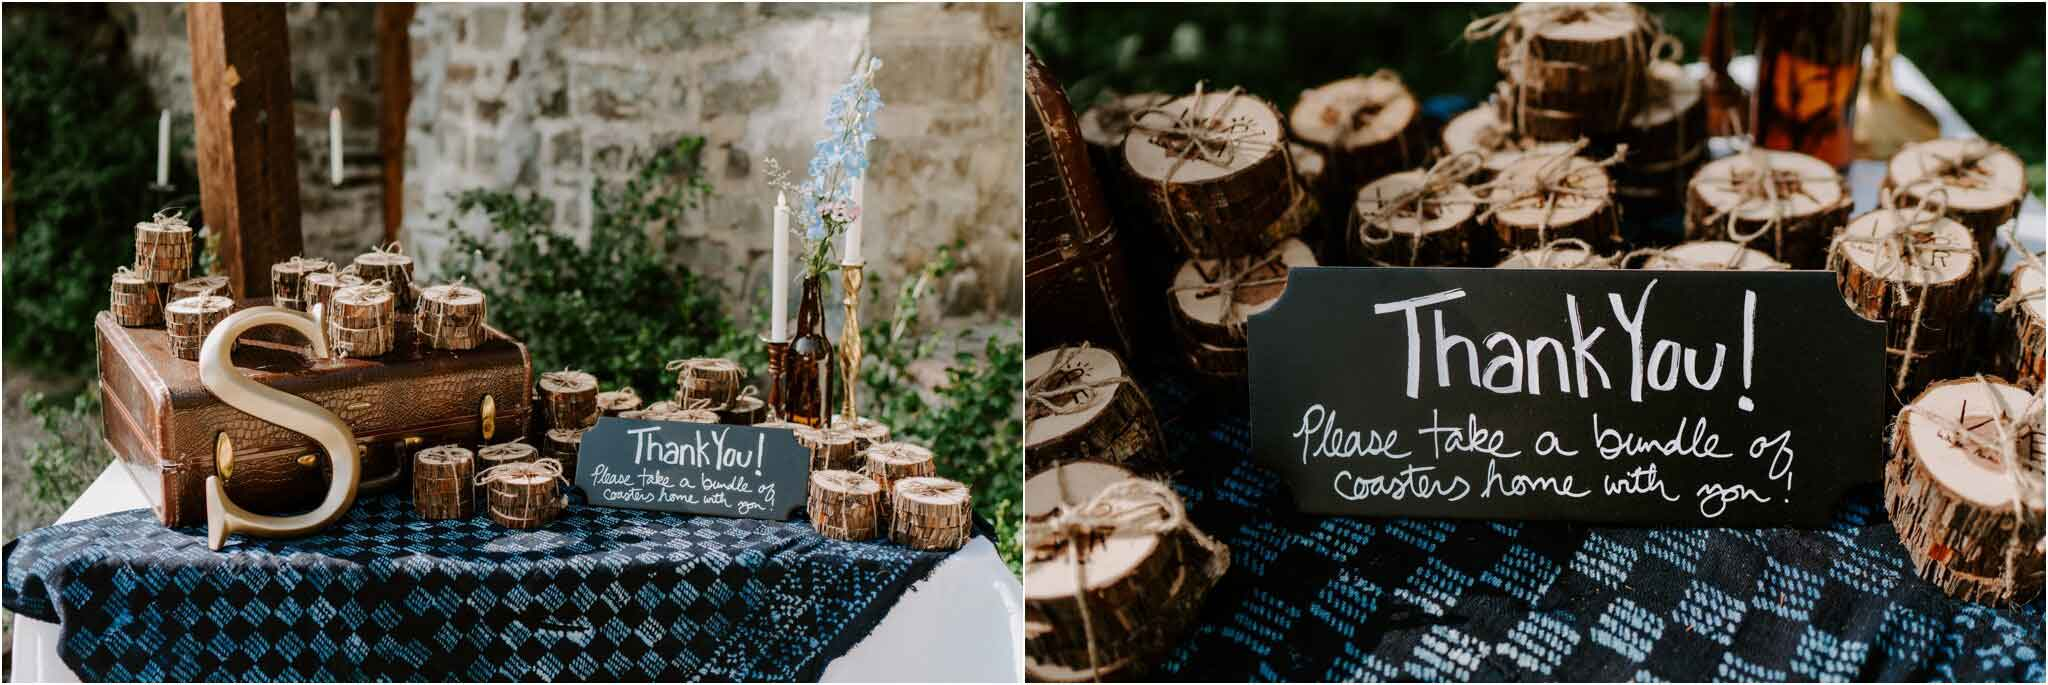 Cedar coaster favors